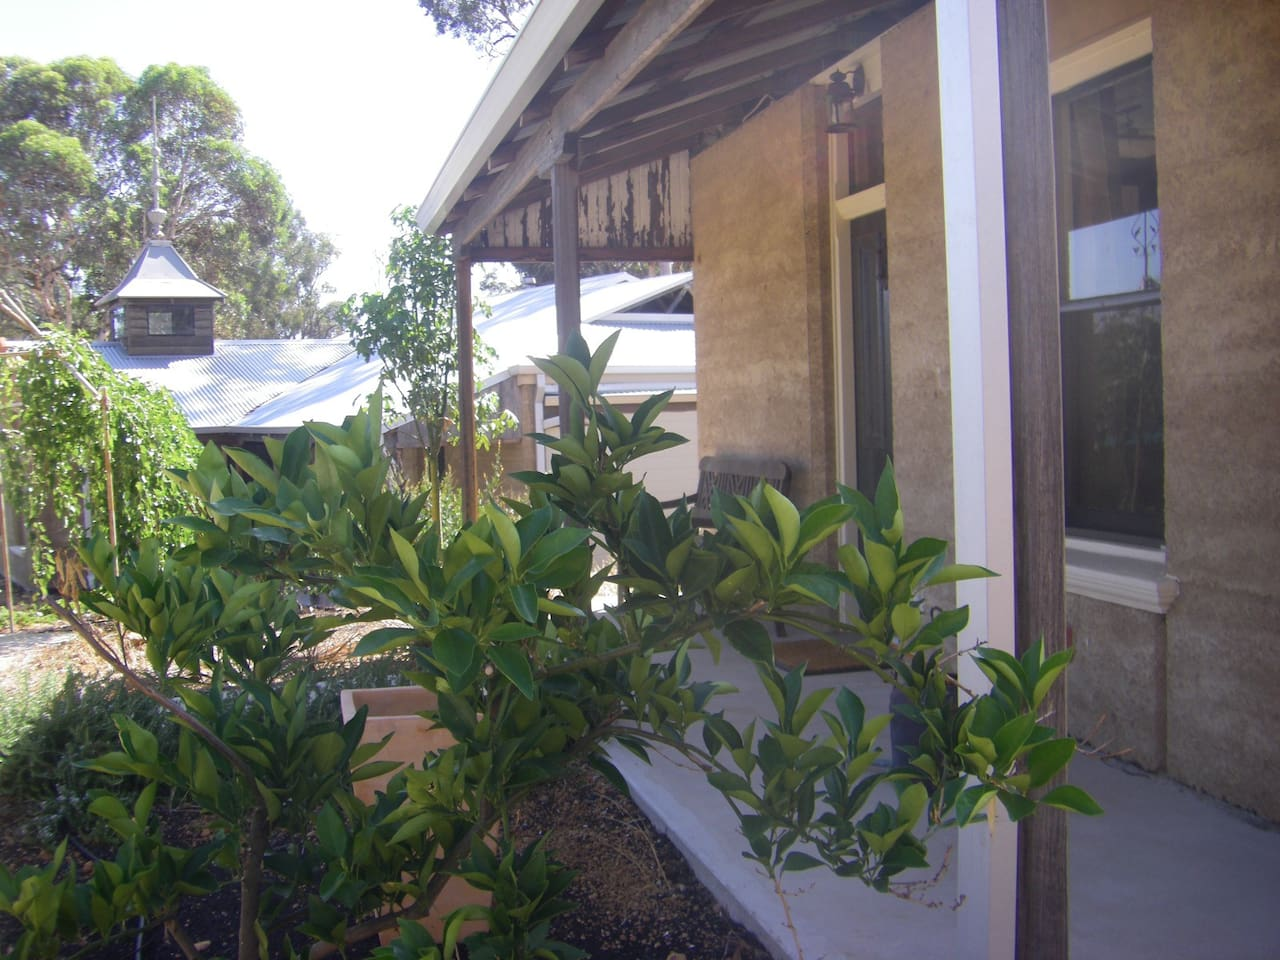 The rammed earth cottage and front veranda